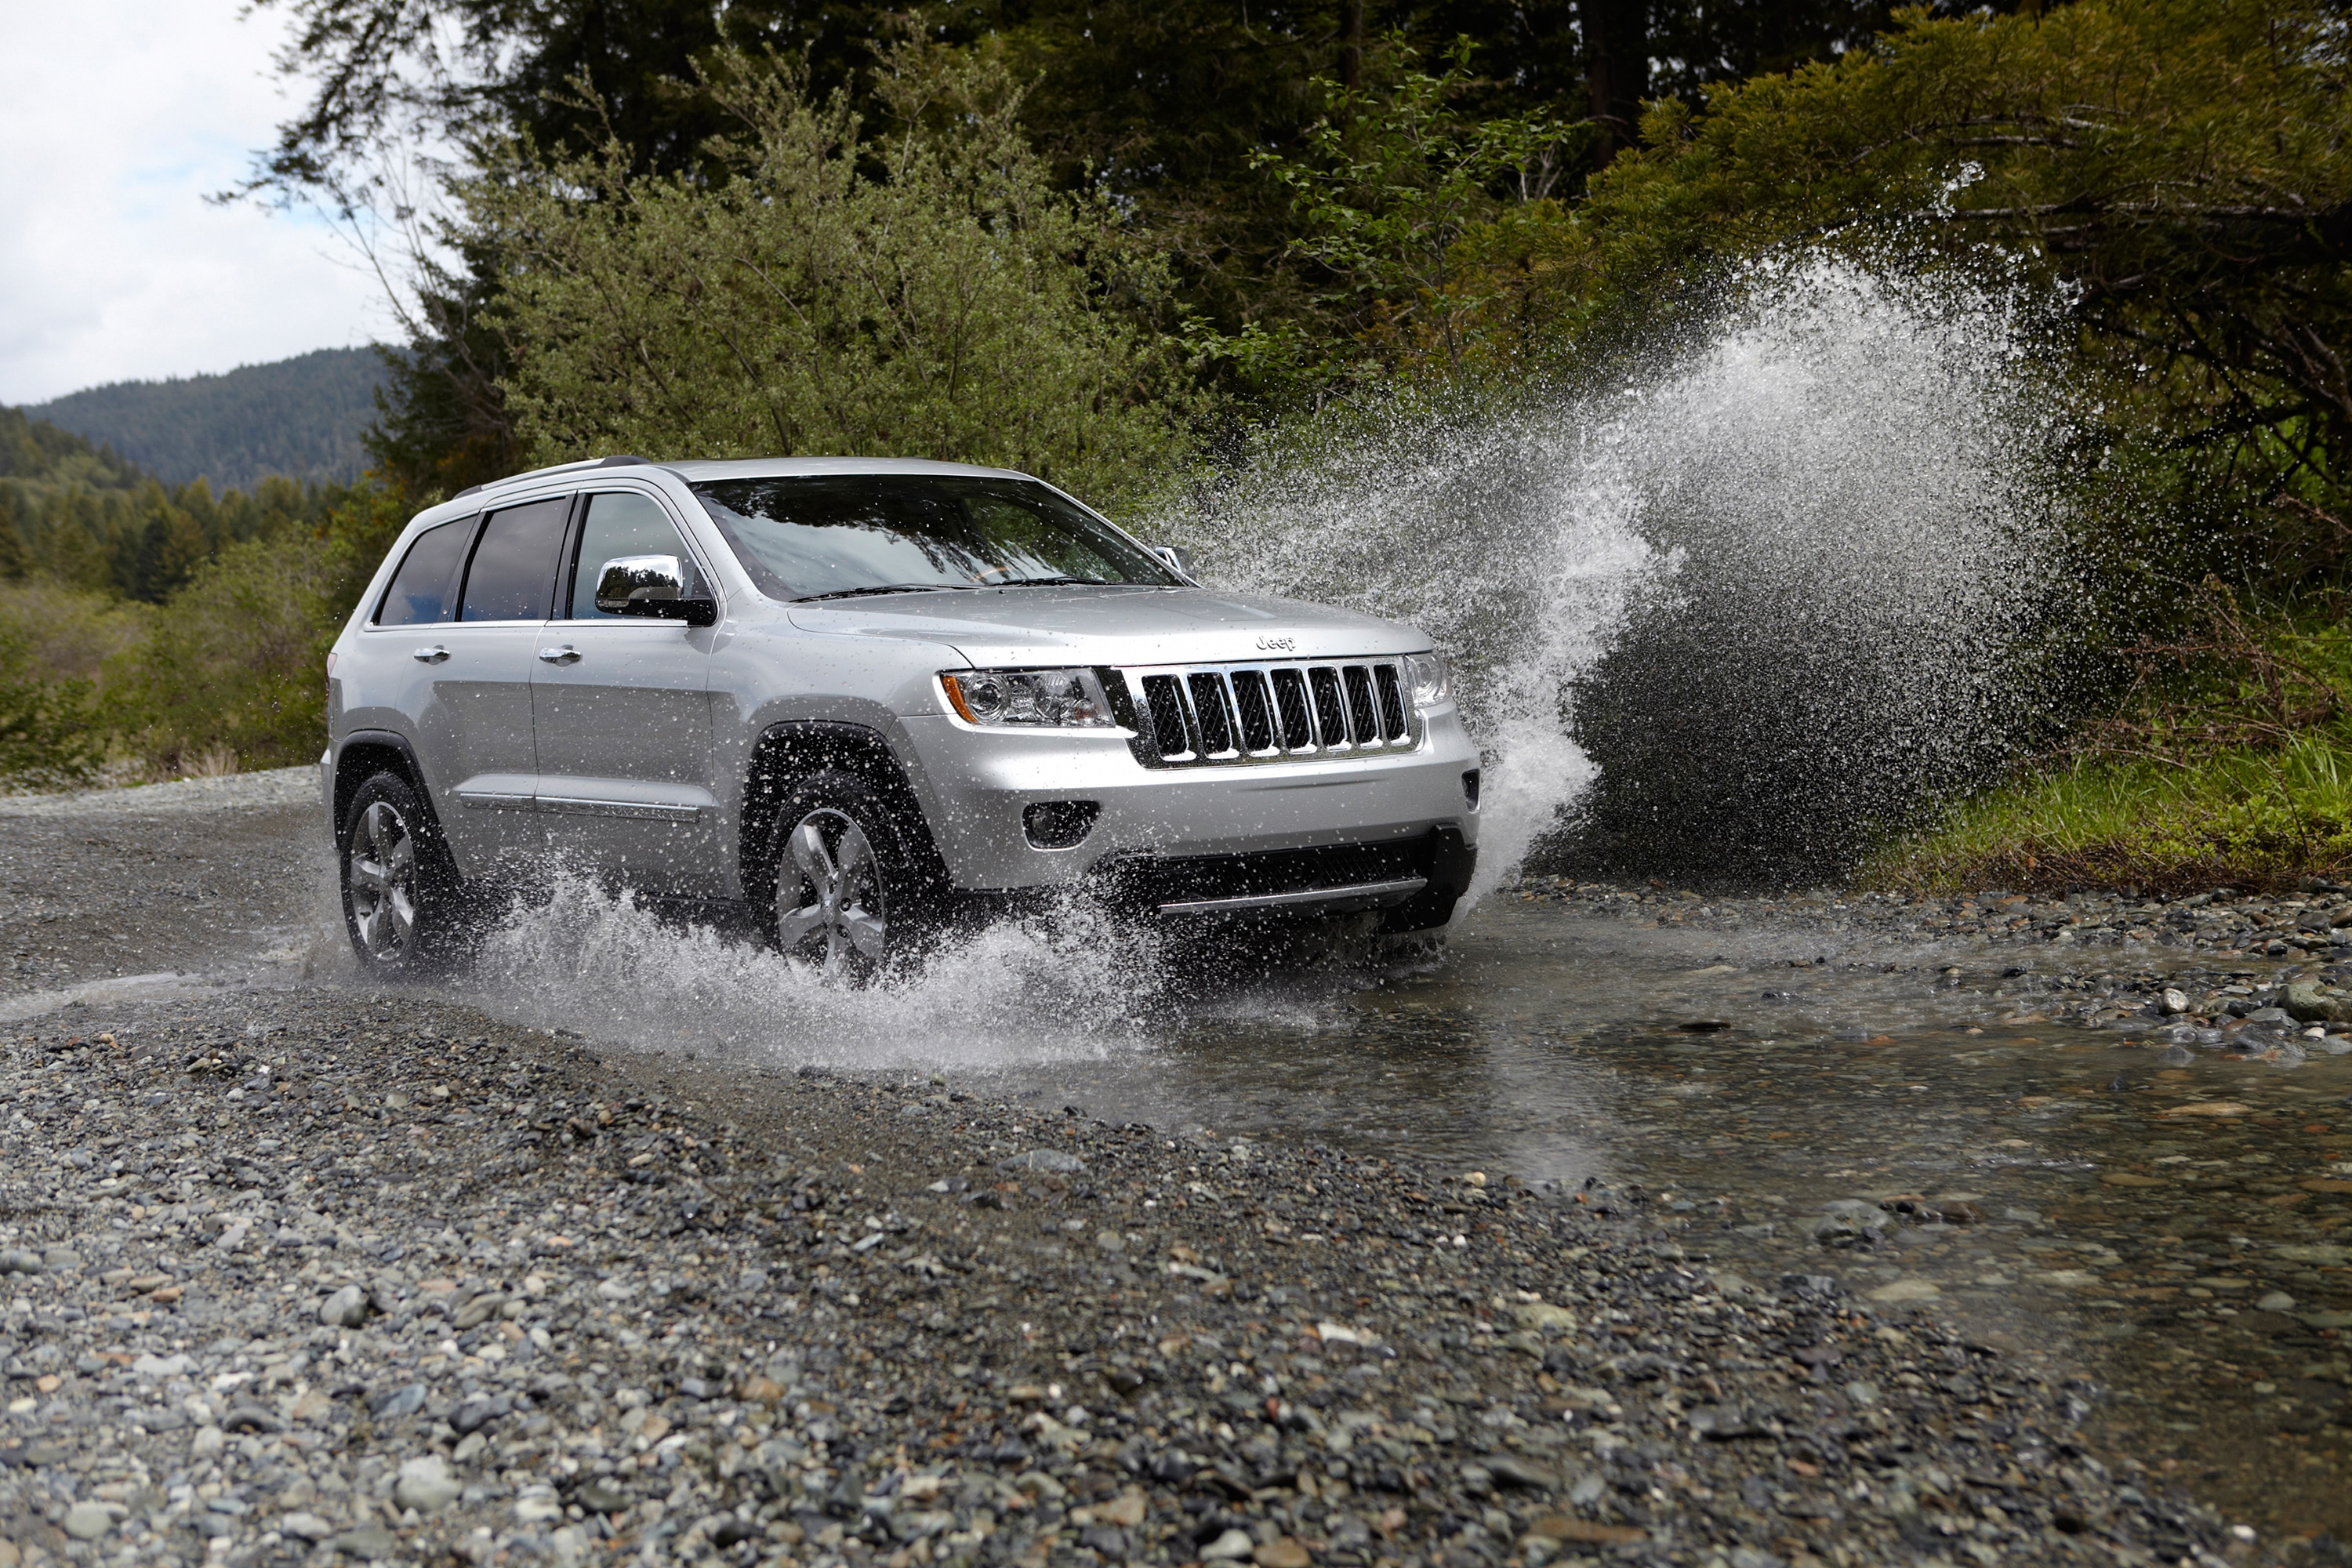 hight resolution of  2012 jeep grand cherokee front water crossing 4x4 offroad jeep wrangler tj rear suspension diagram